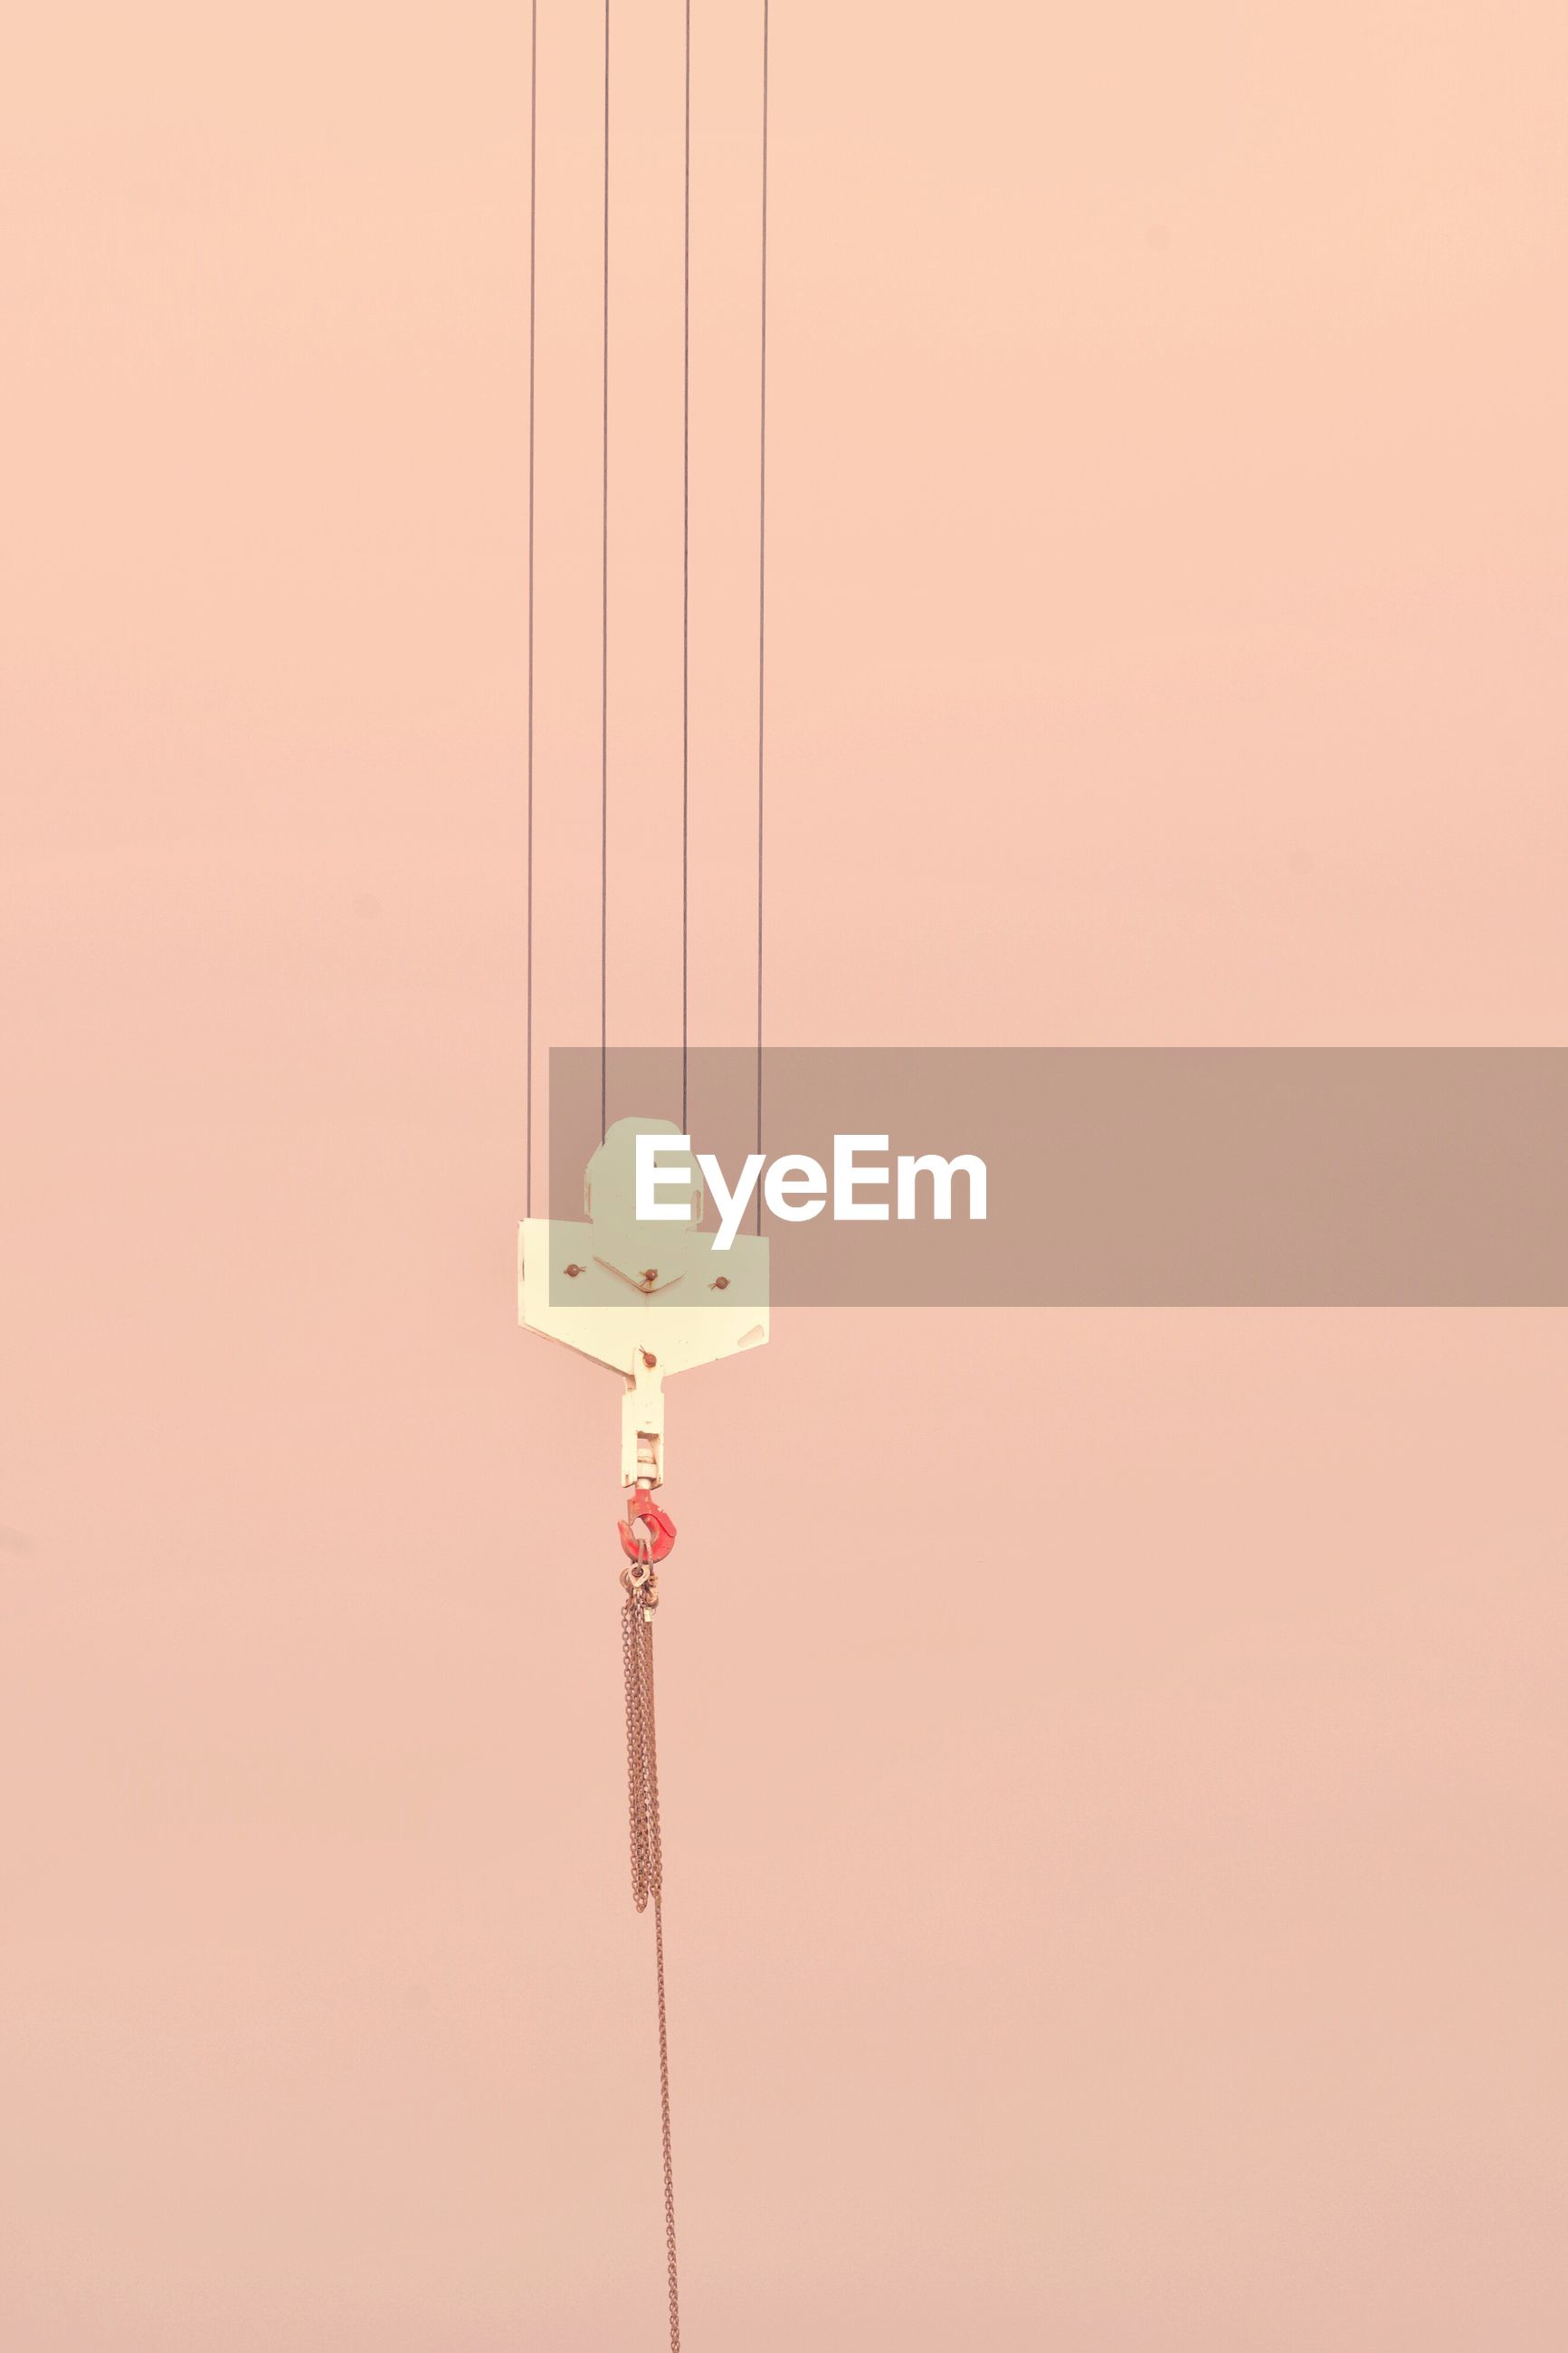 Close-up of hook hanging on cable against colored background